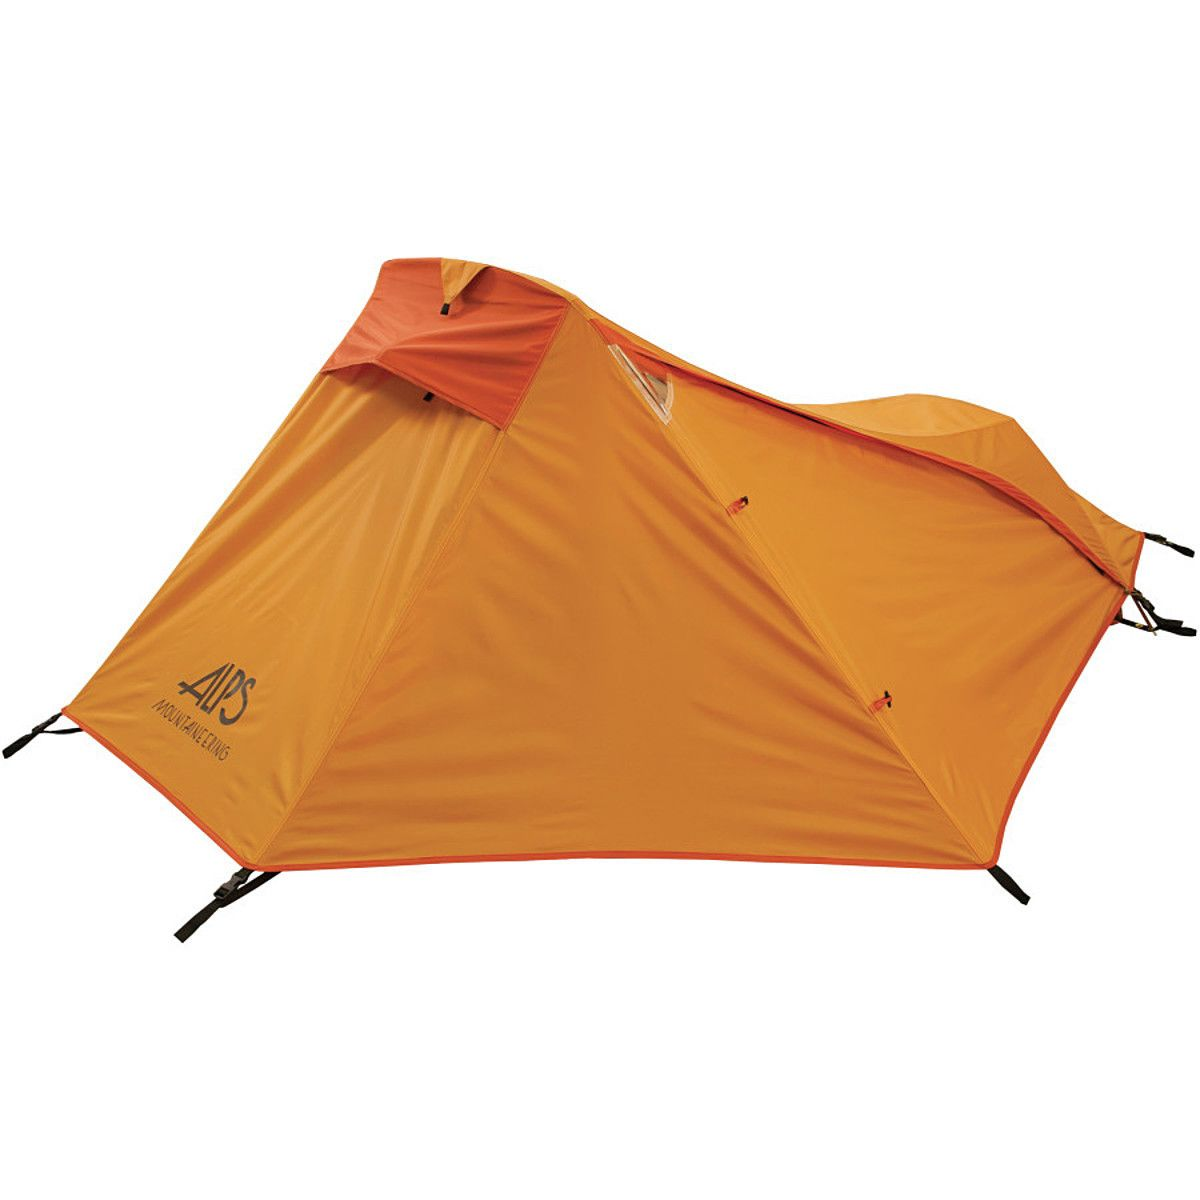 ALPS Mountaineering Mystique 2